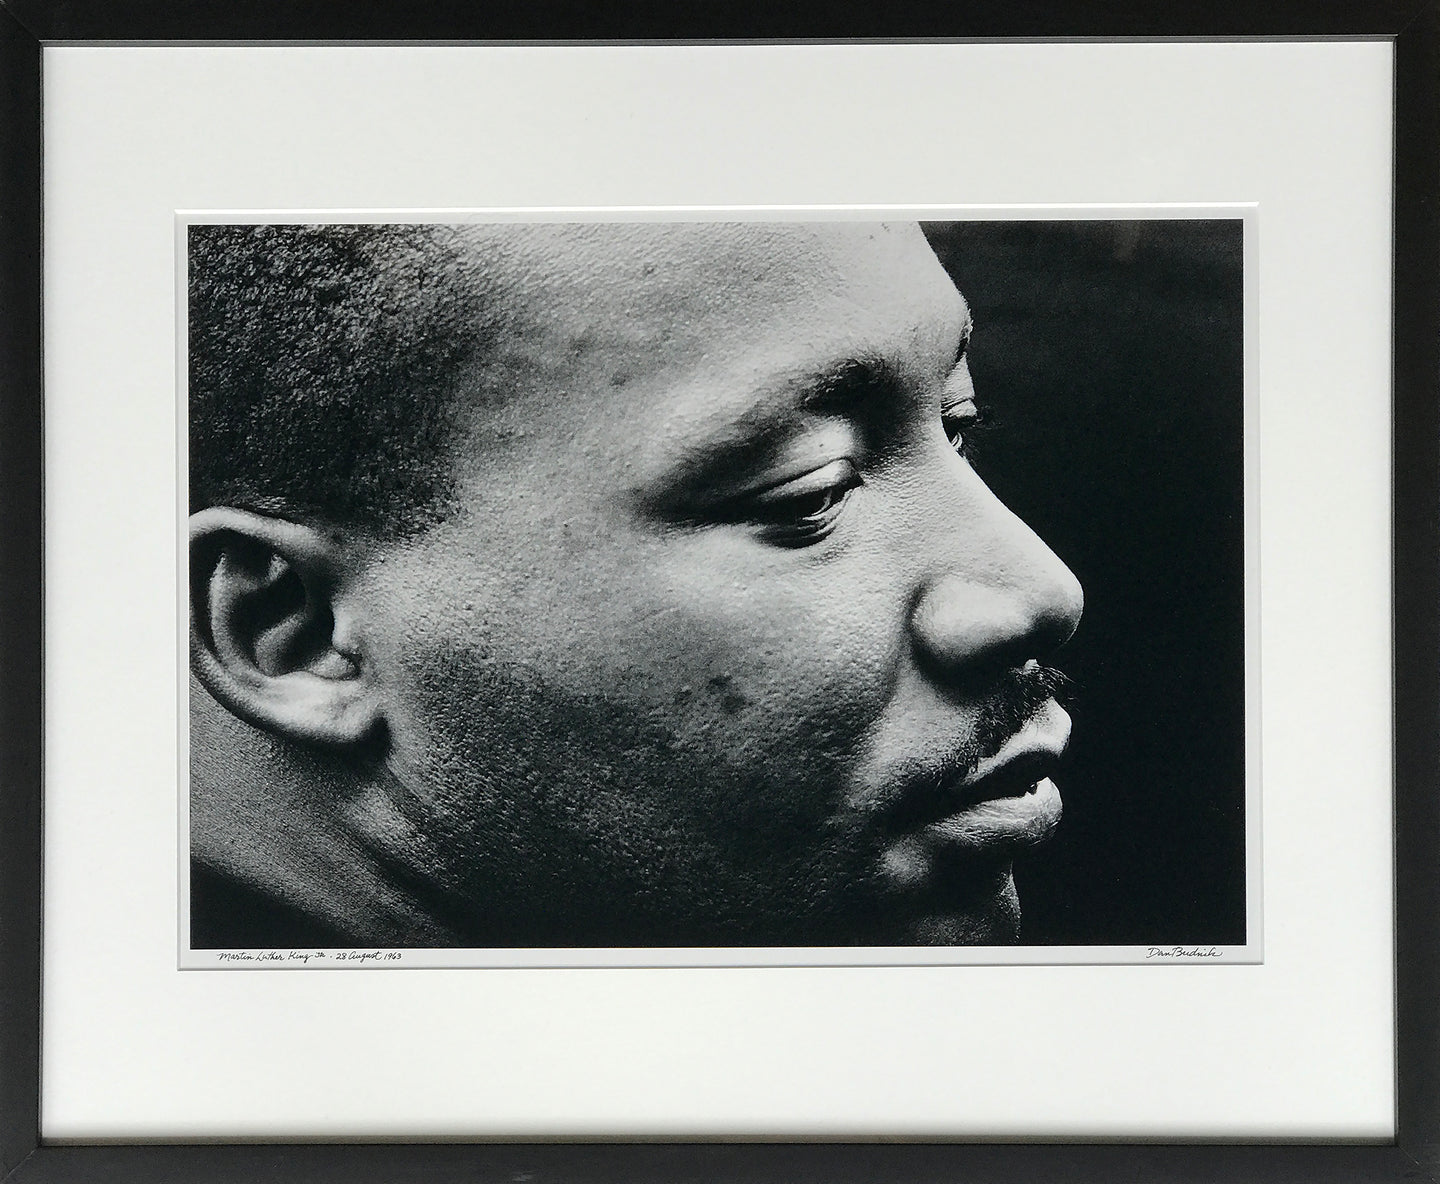 Martin Luther King, Jr. after delivering his